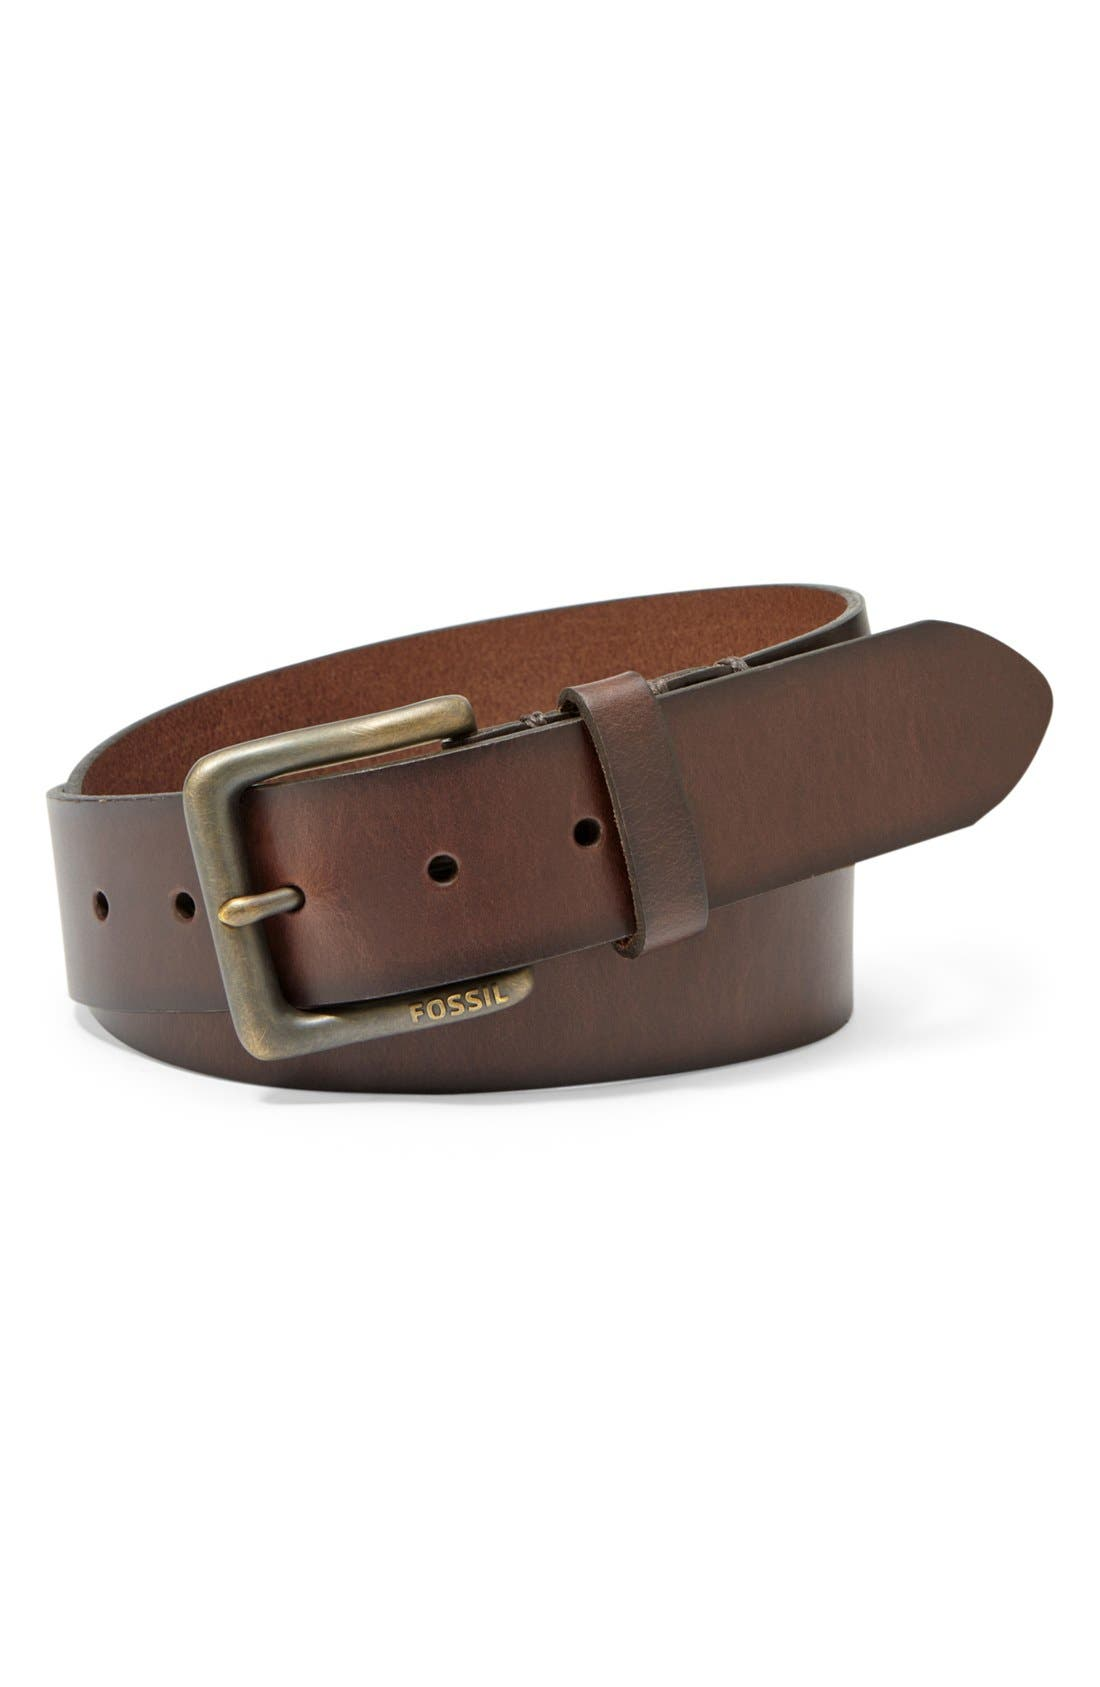 FOSSIL 'Artie' Belt, Main, color, 201